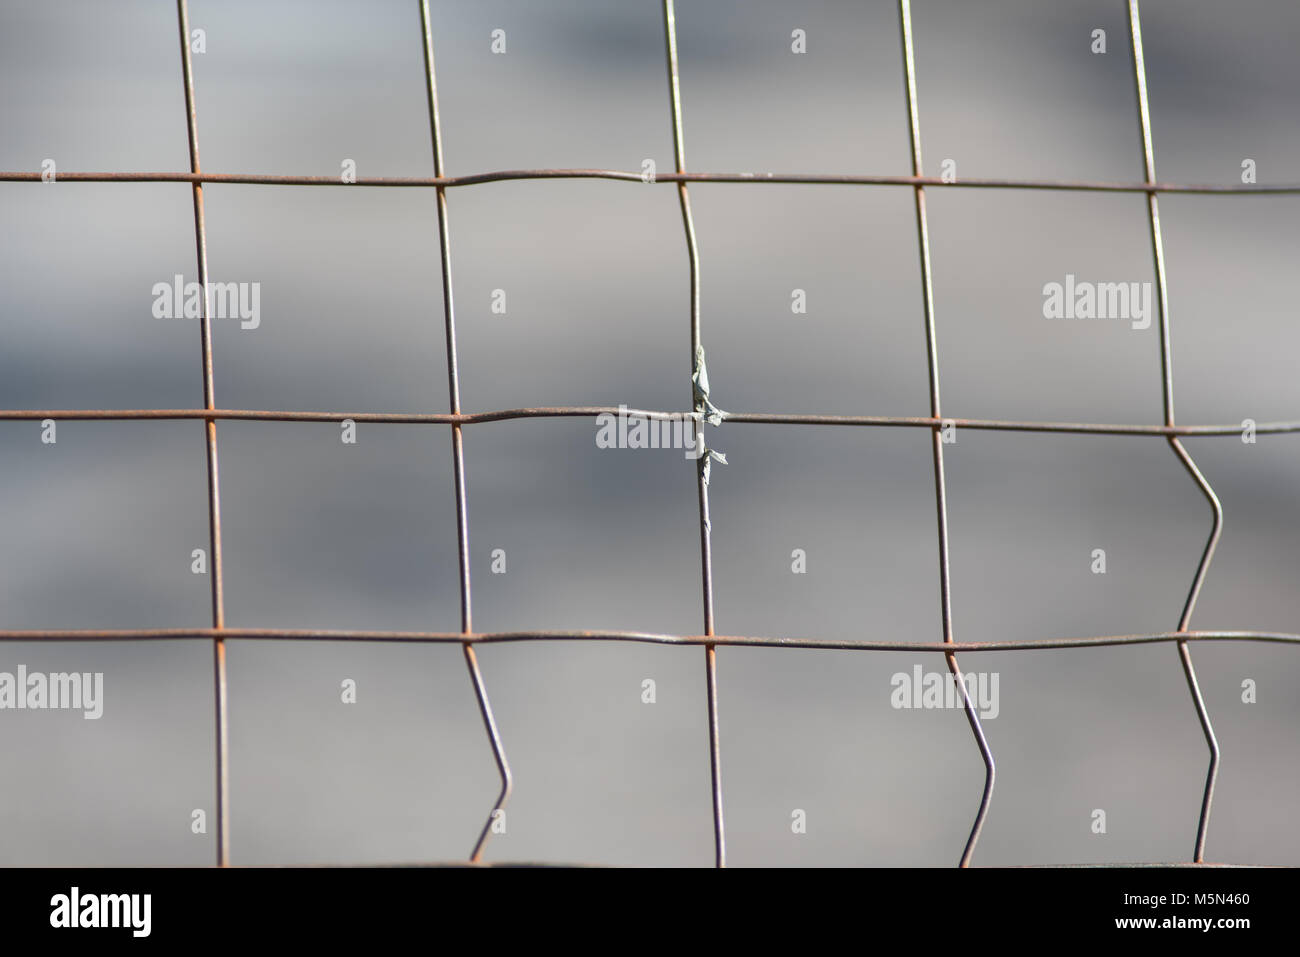 Private Area Metal Fence Stock Photo 175641256 Alamy